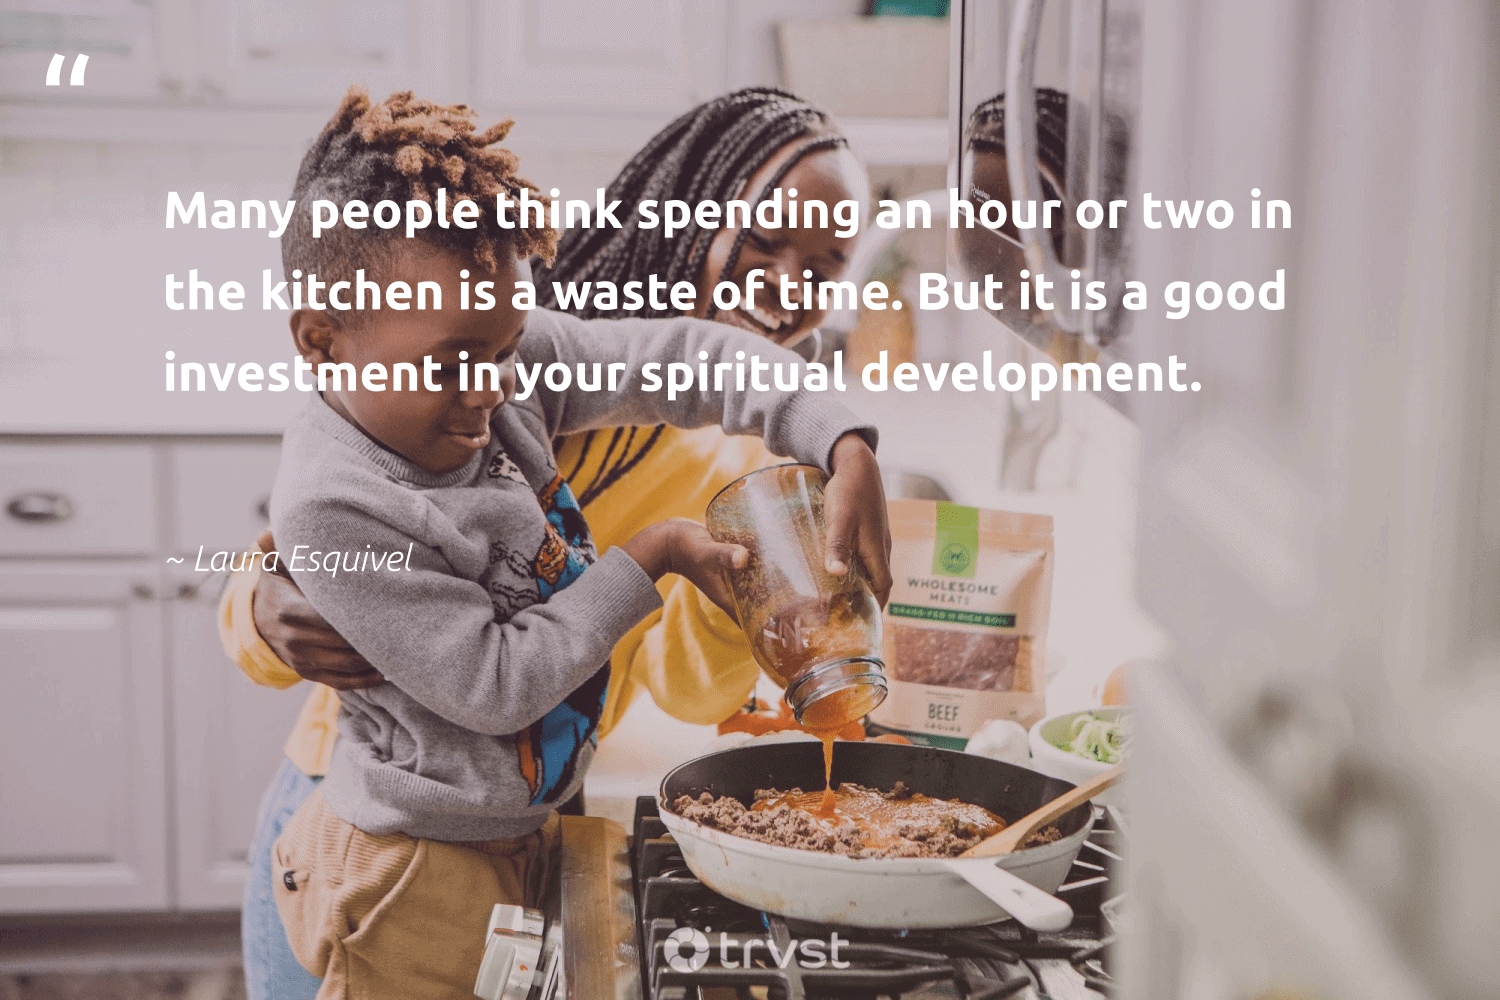 """""""Many people think spending an hour or two in the kitchen is a waste of time. But it is a good investment in your spiritual development.""""  - Laura Esquivel #trvst #quotes #waste #spiritual #development #changemakers #collectiveaction #health #dotherightthing #mindset #bethechange #begreat"""